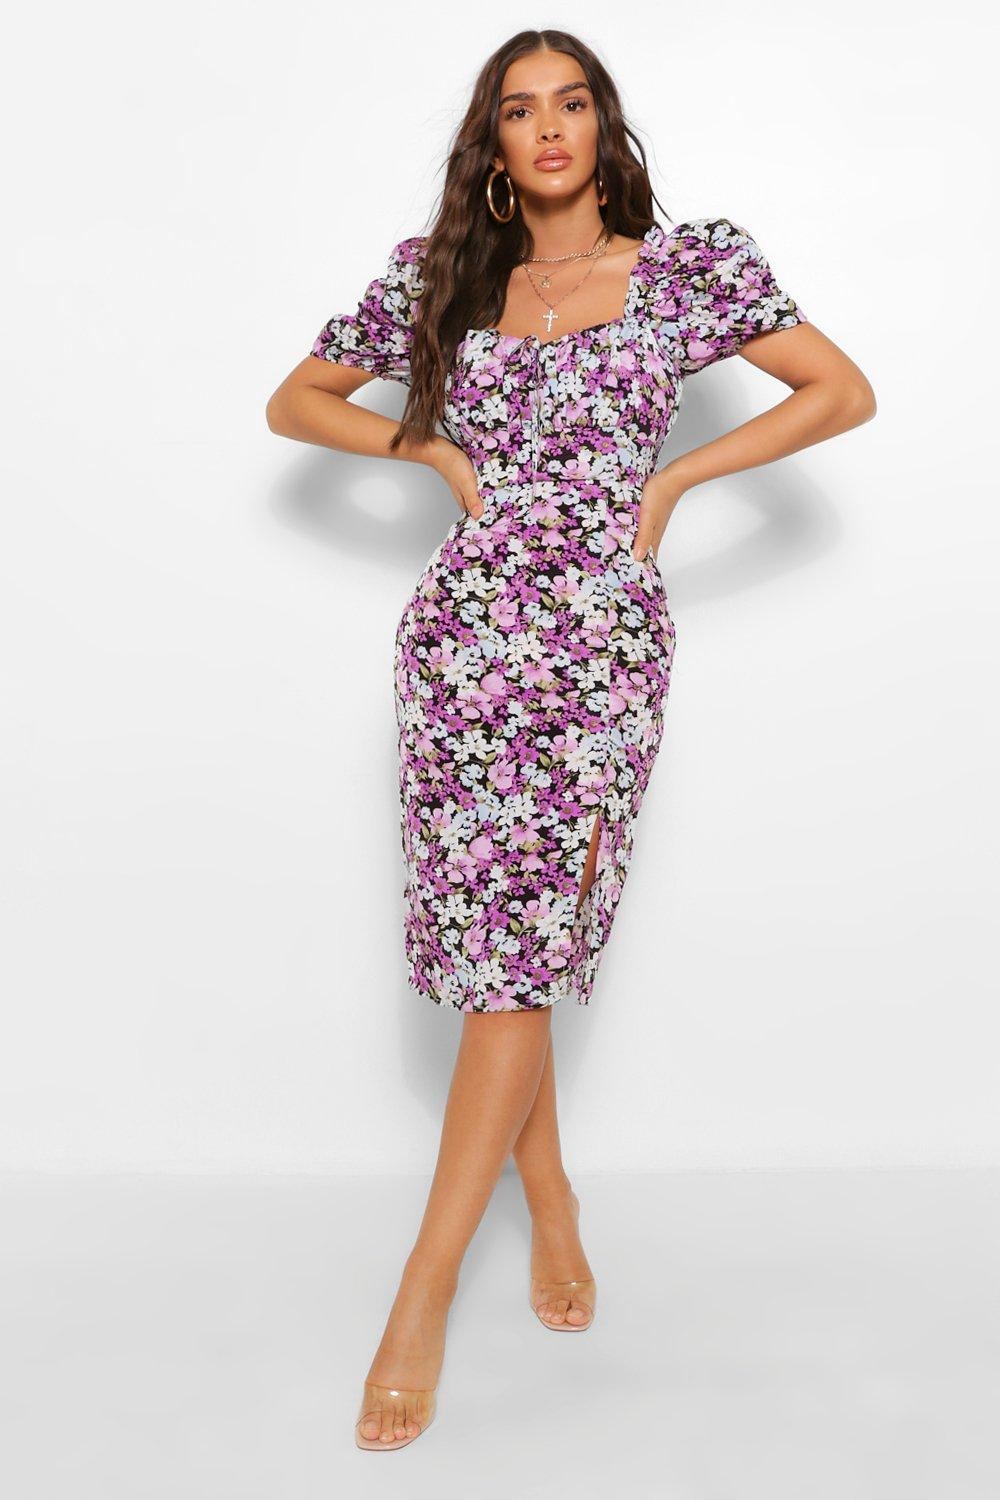 80s Dresses | Casual to Party Dresses Womens Floral Rouched Bust Puff Sleeve Midi Dress - Purple - 14 $24.00 AT vintagedancer.com